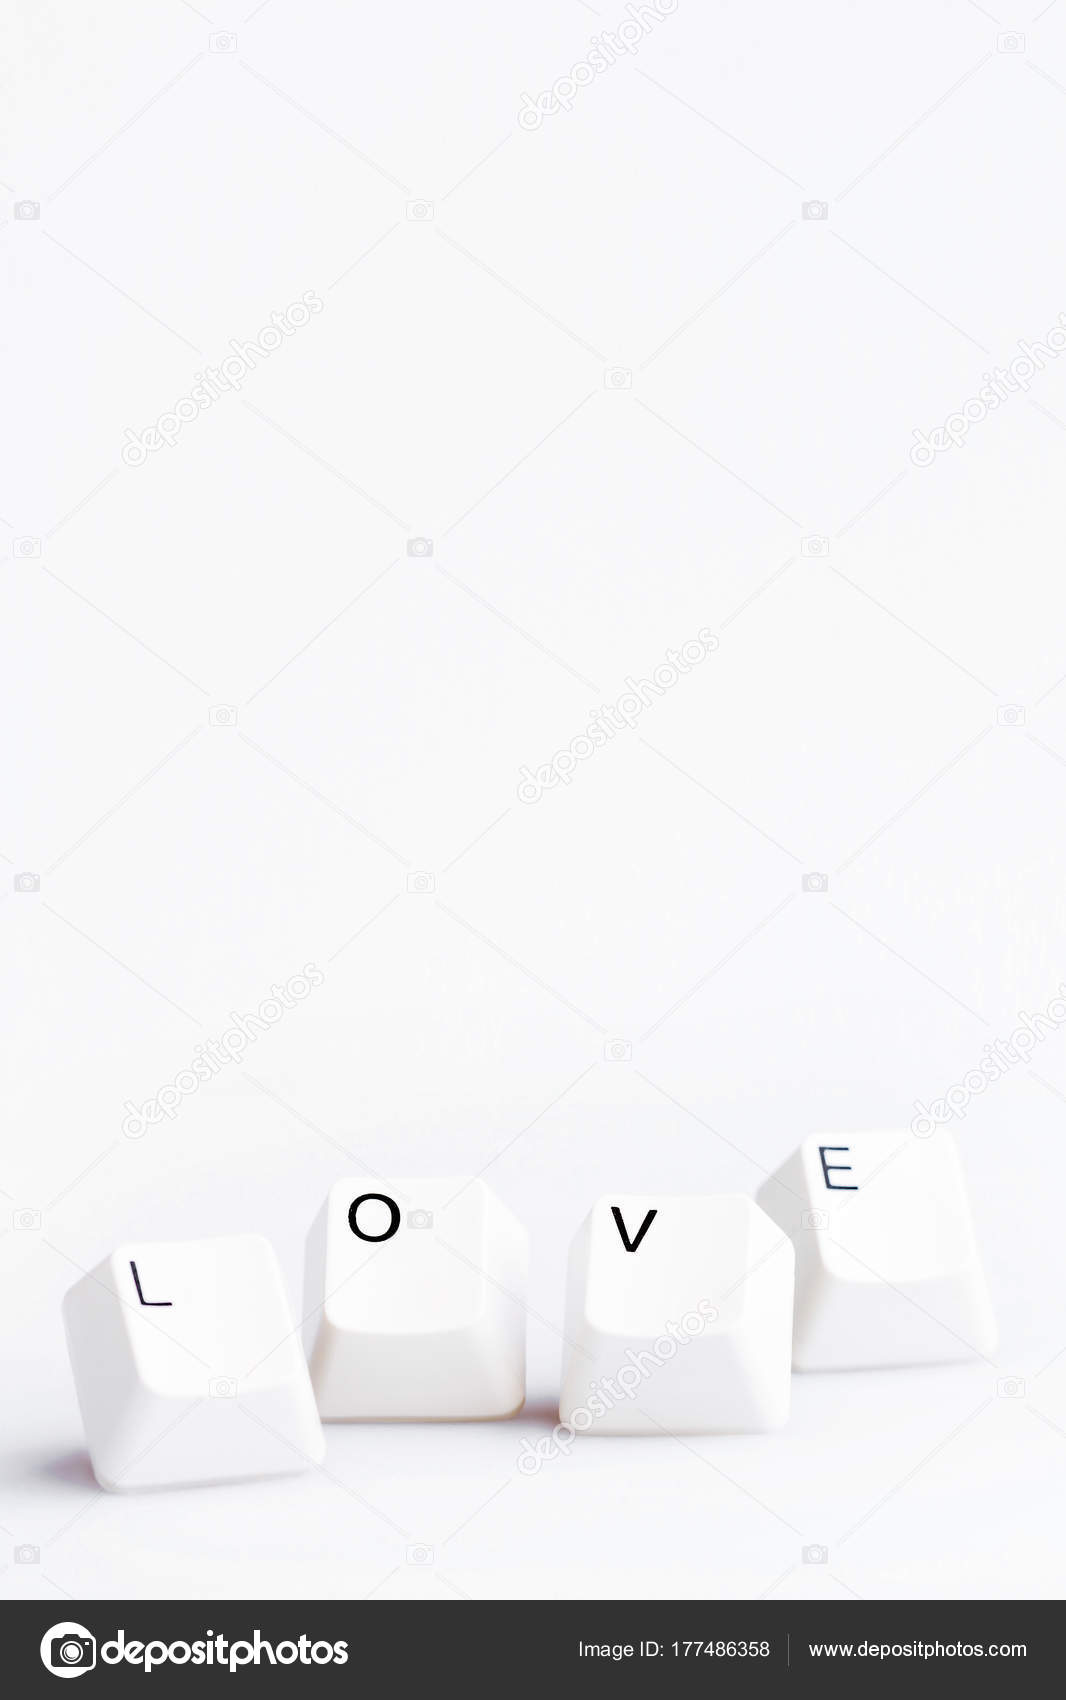 Word Love On Computer Keyboards Buttons May Be Used As Symbol Of